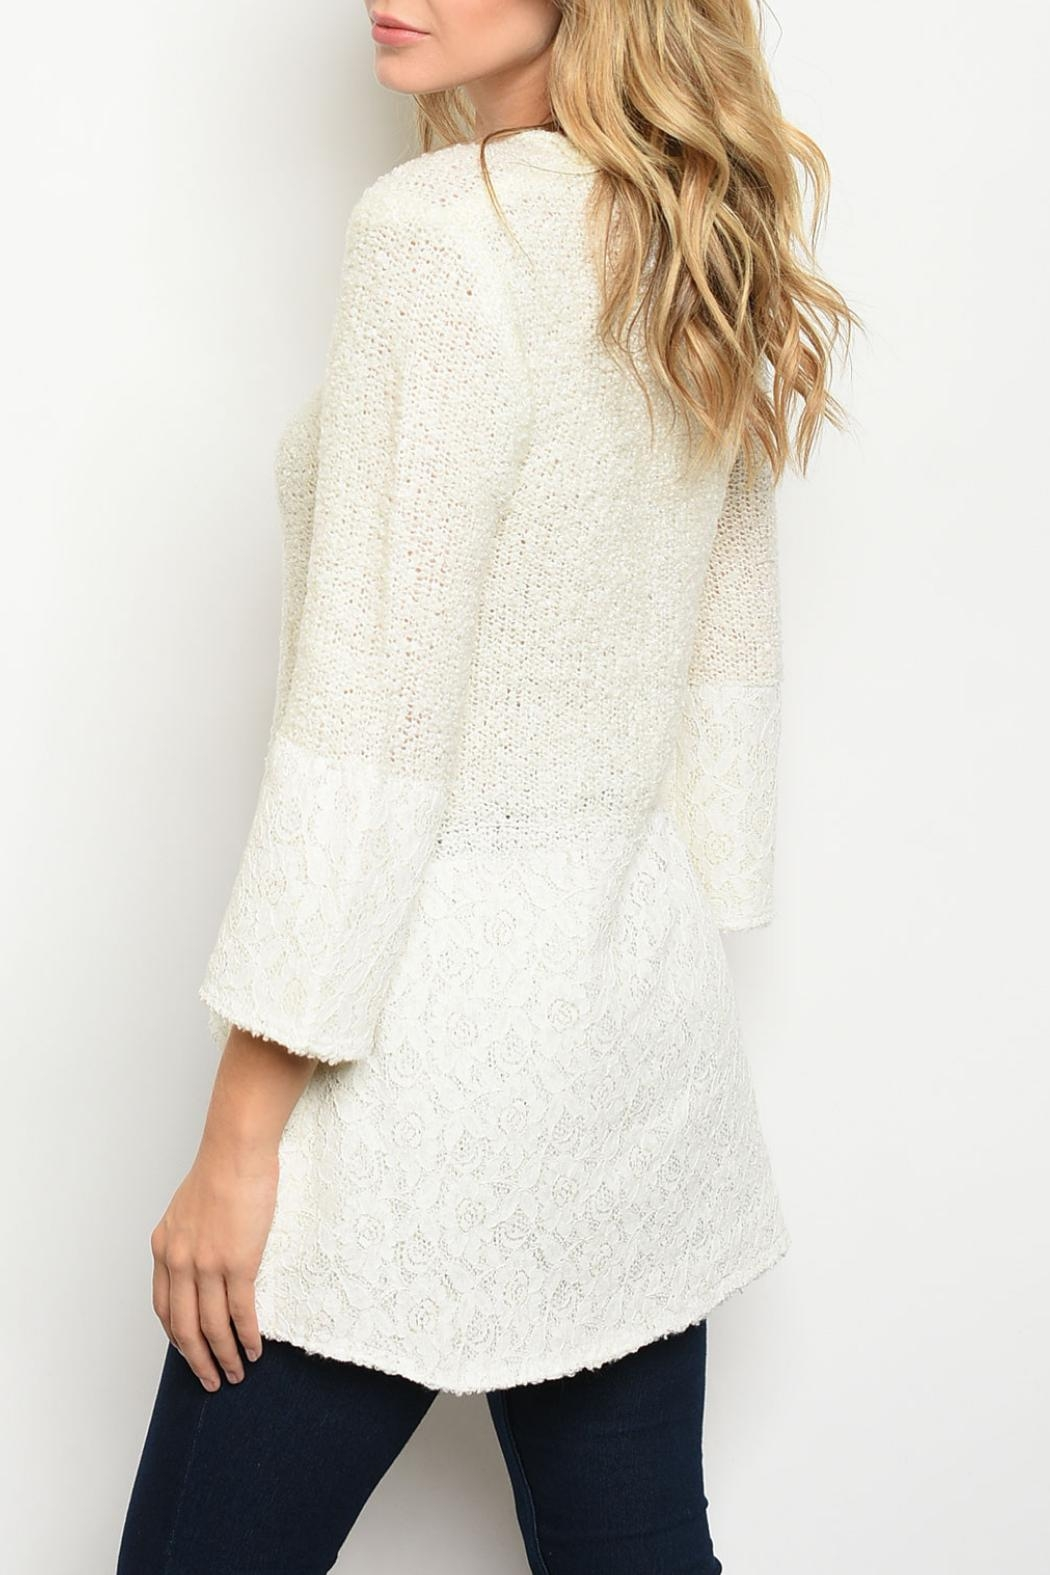 Potter's Pot Ivory Tunic Top - Front Full Image